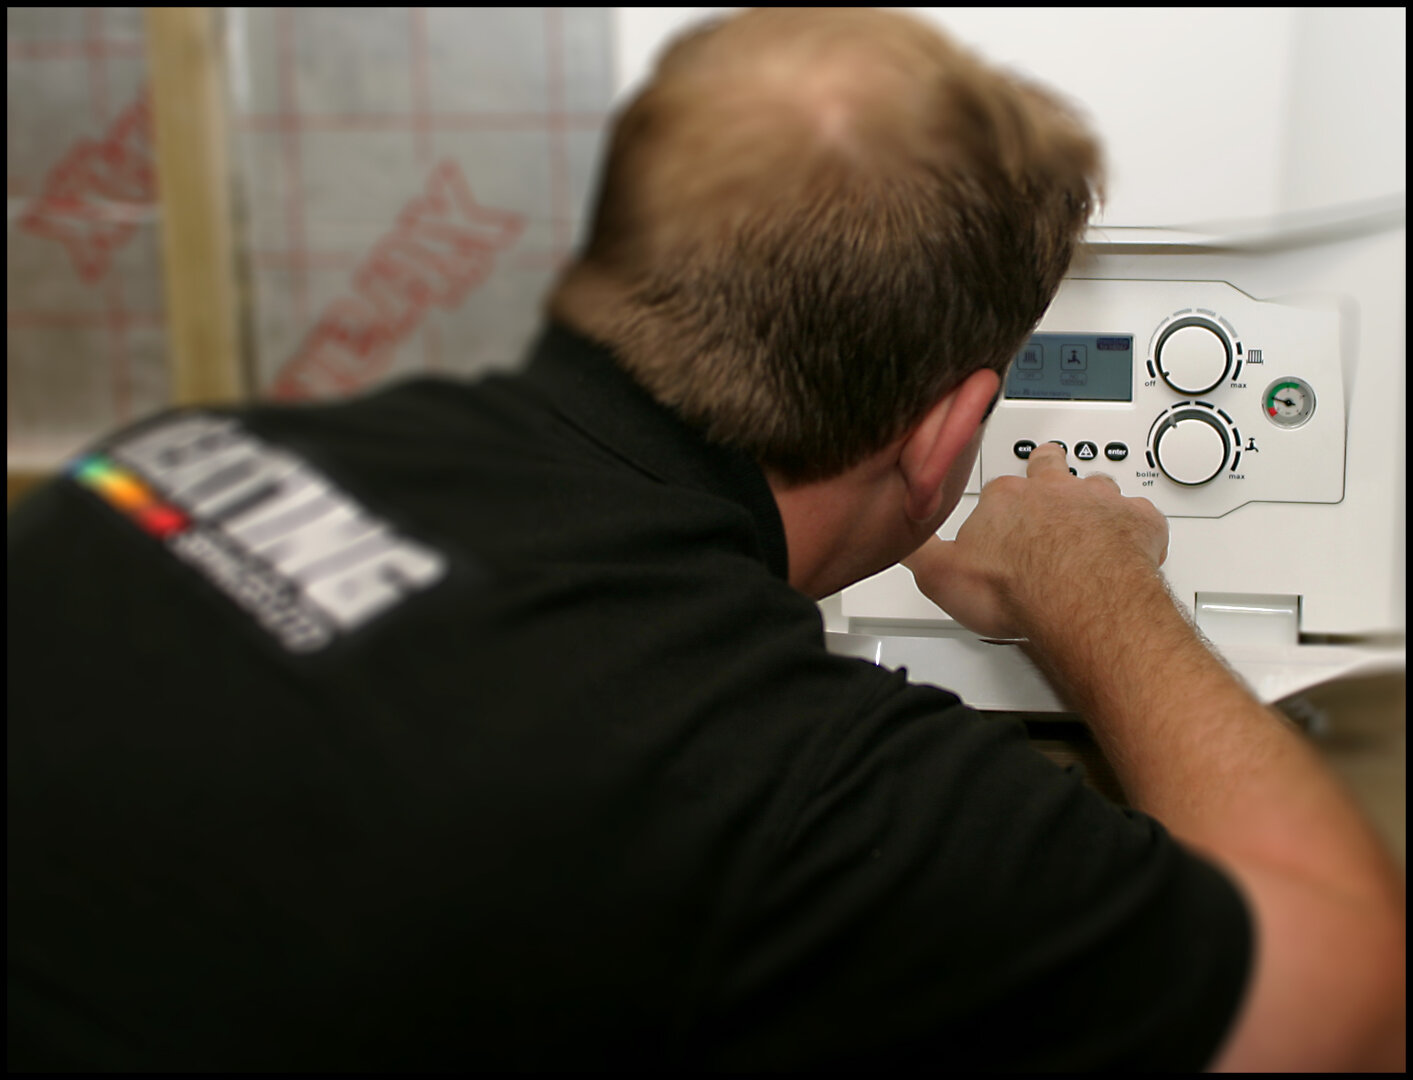 Plumbers Boiler Installation Service and Repairs and Bathroom Design and Installation by Heating Services Ltd in Orpington (4)